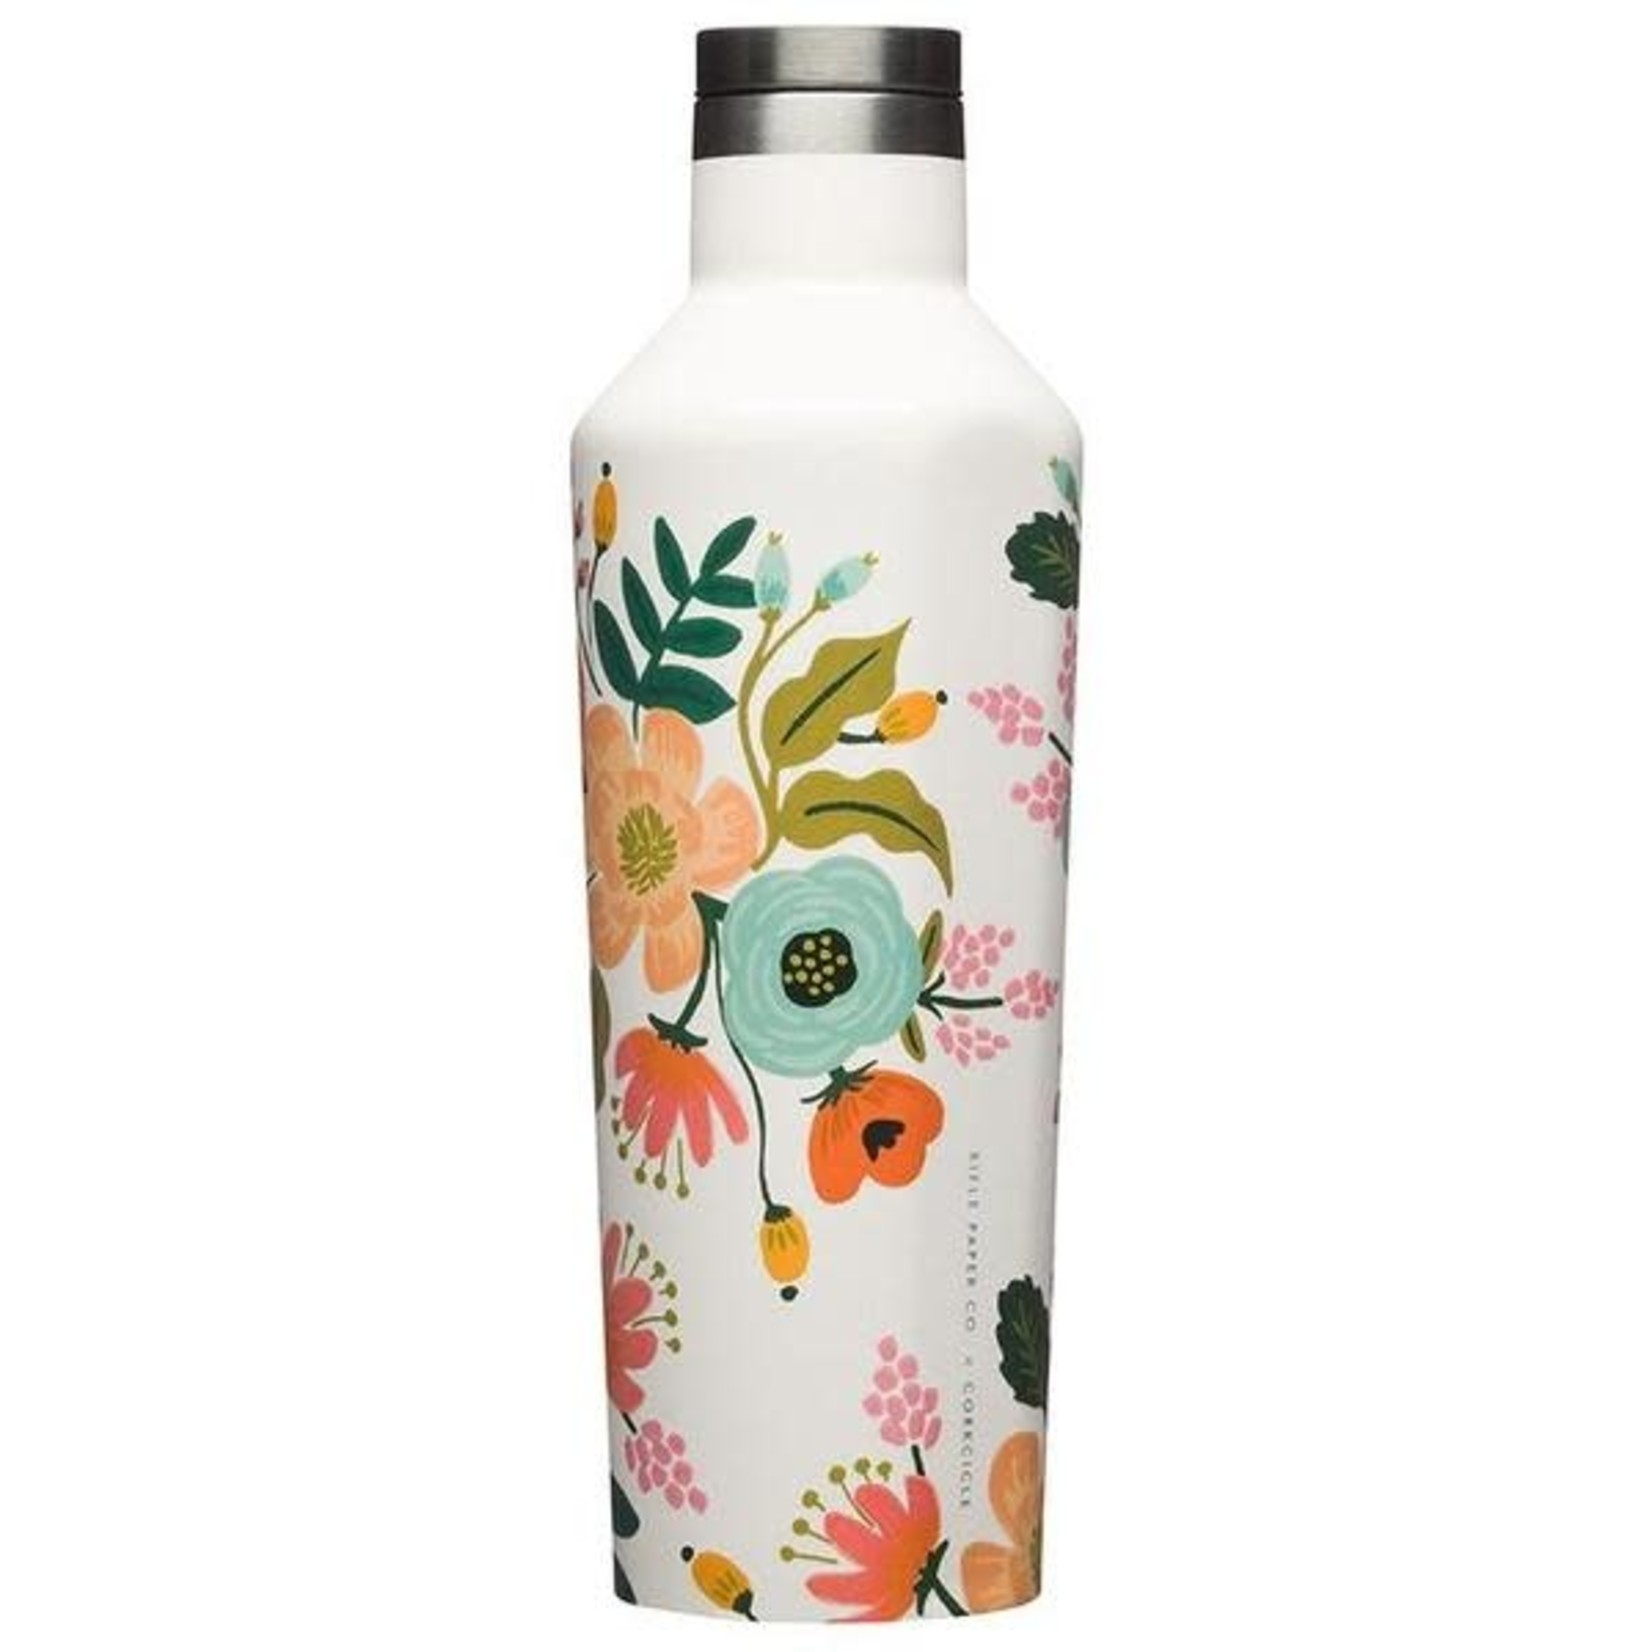 Corkcicle Canteen Rifle Paper Gloss Cream/Lively Floral 16oz